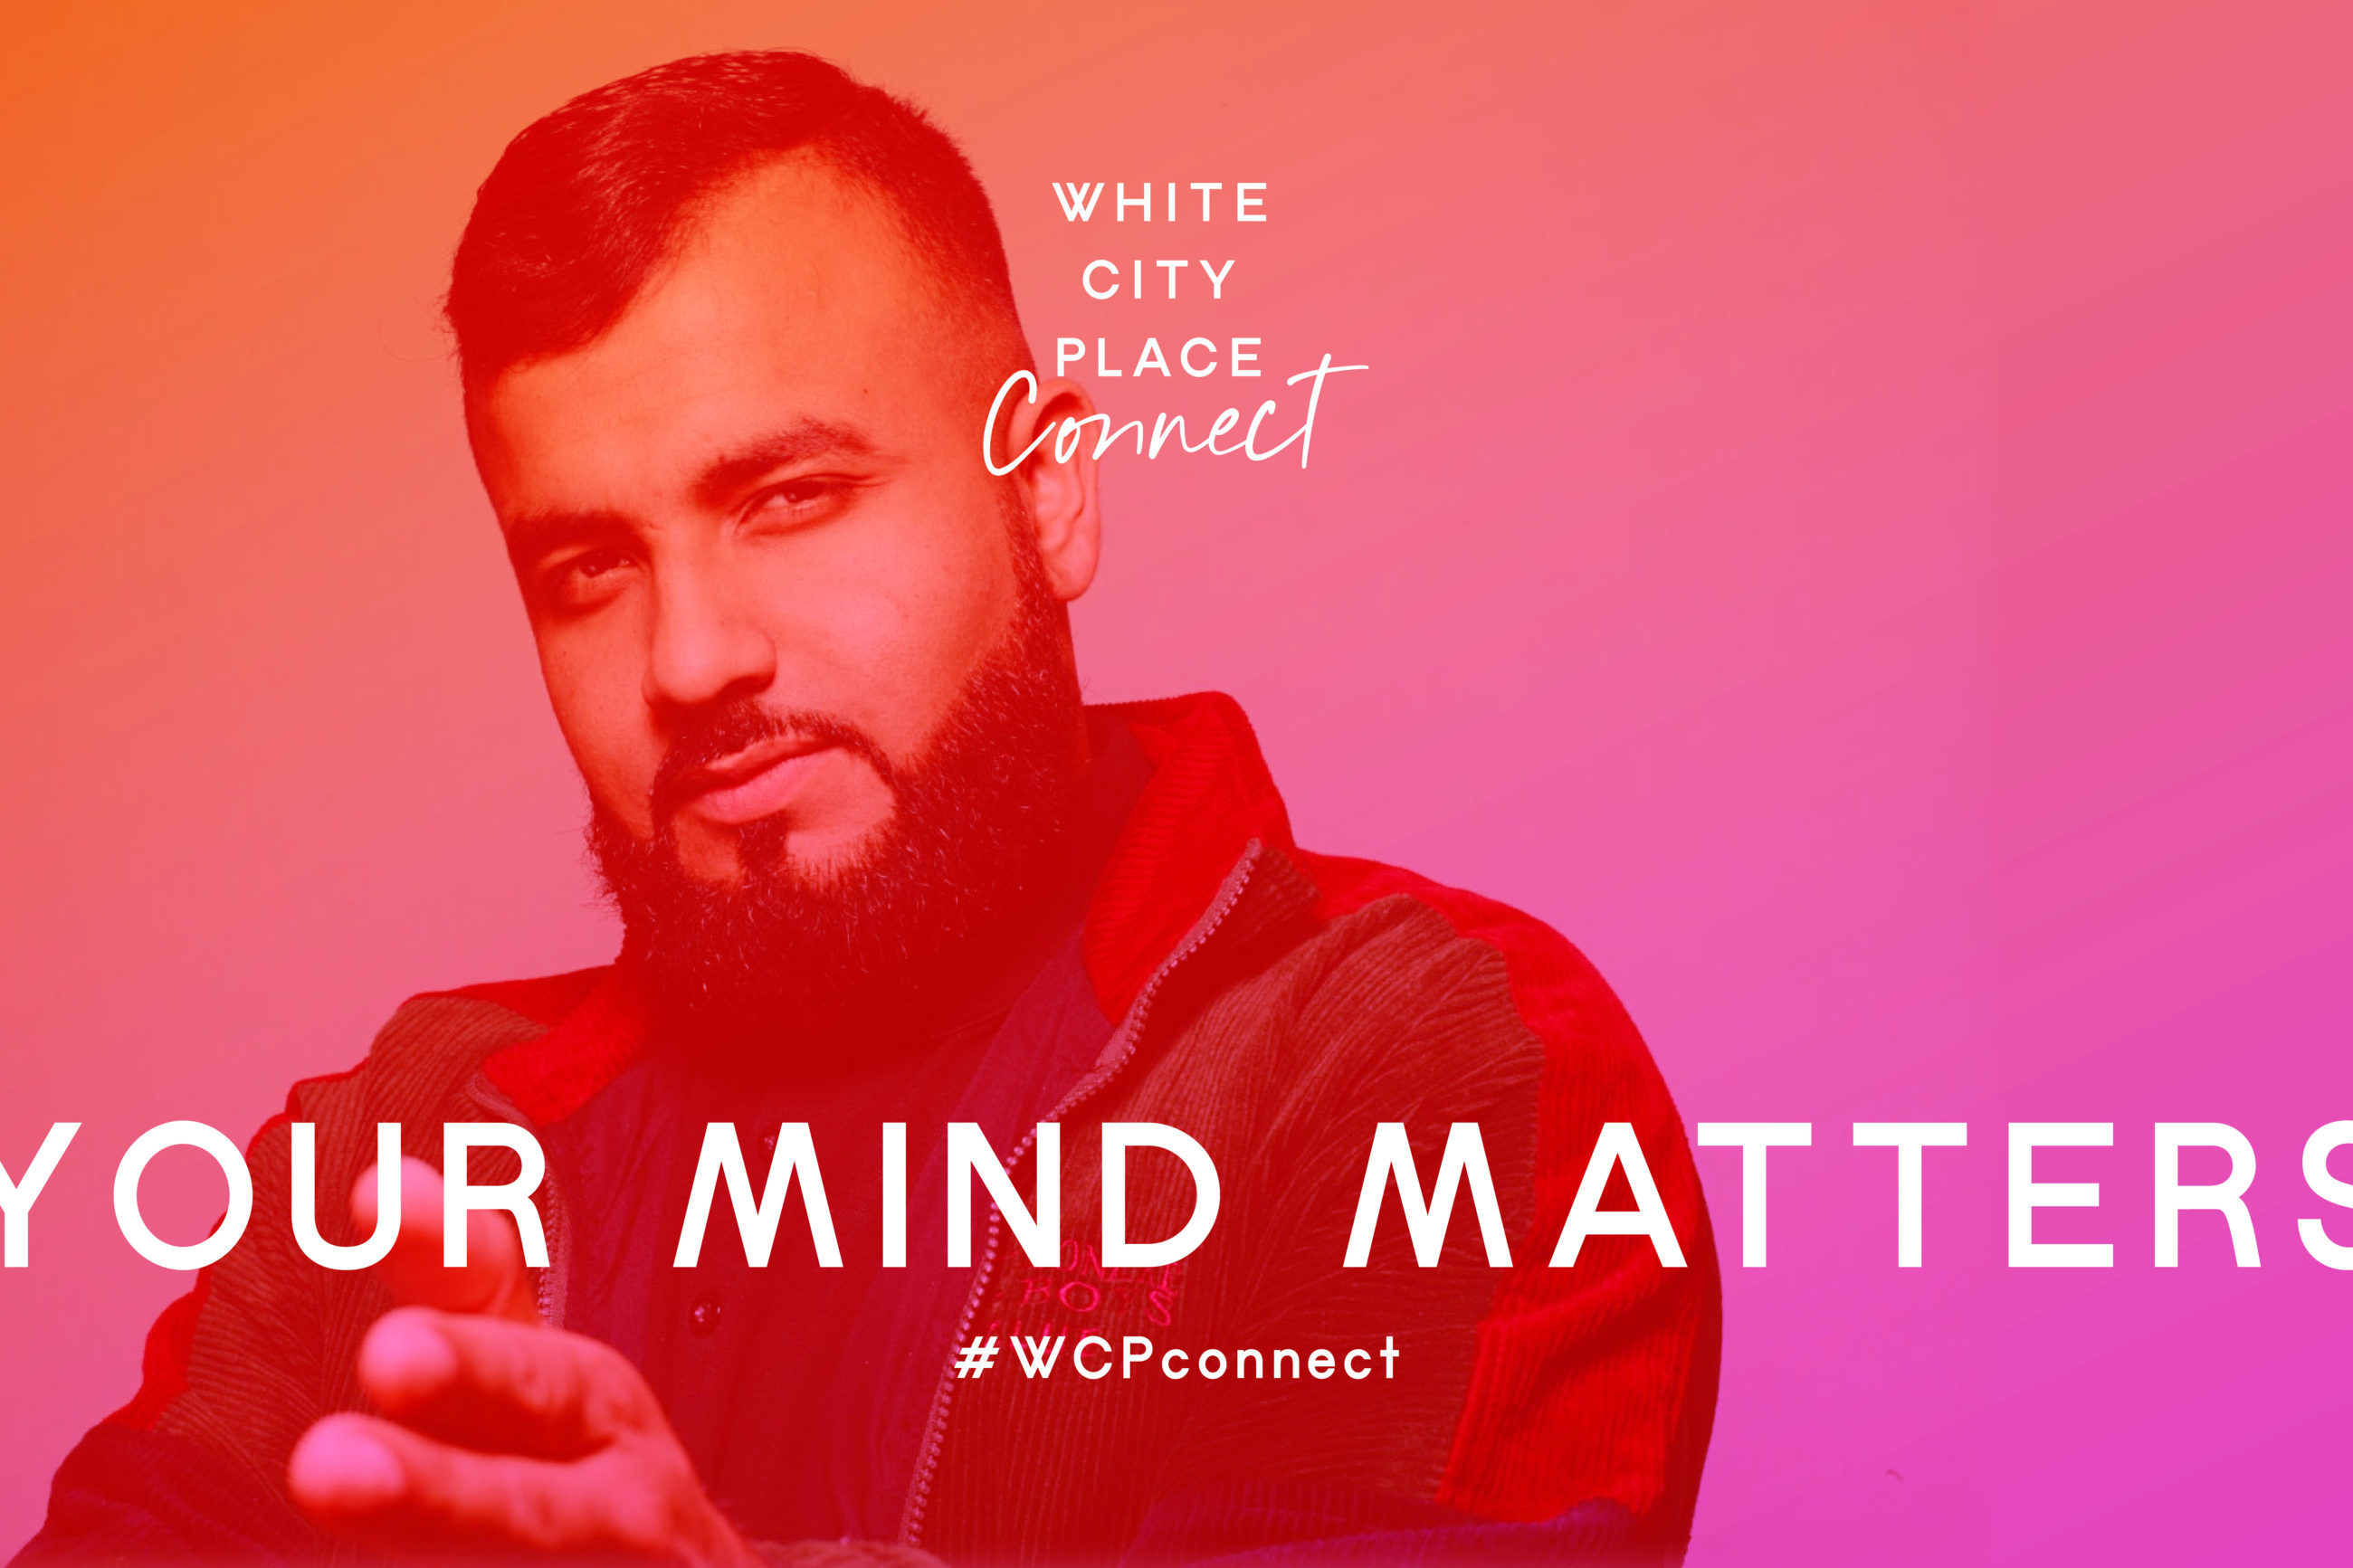 White City Place Connect: Your Mind Matters Feature Image